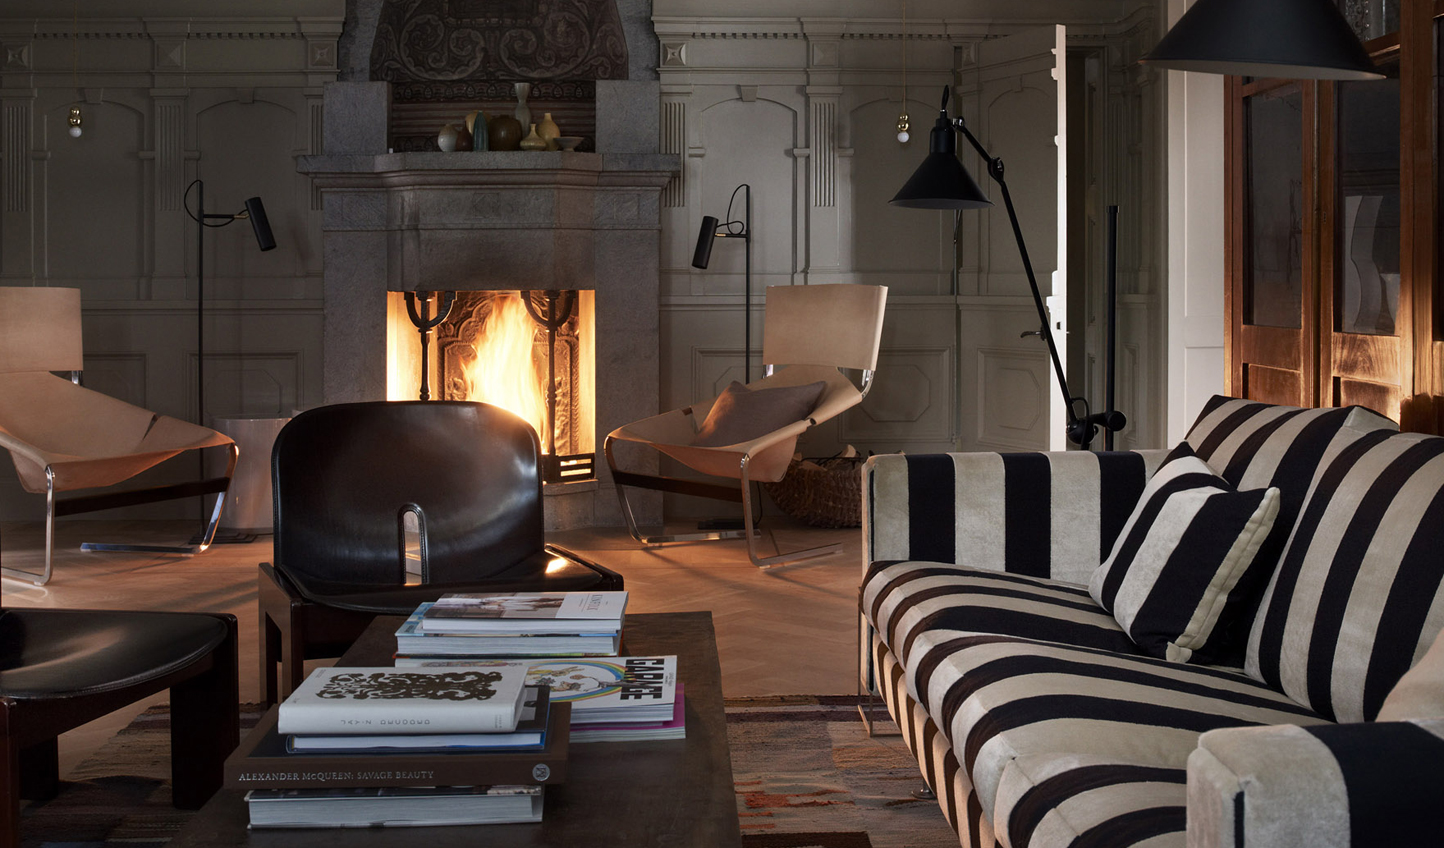 ... and an ideal winter reading spot.